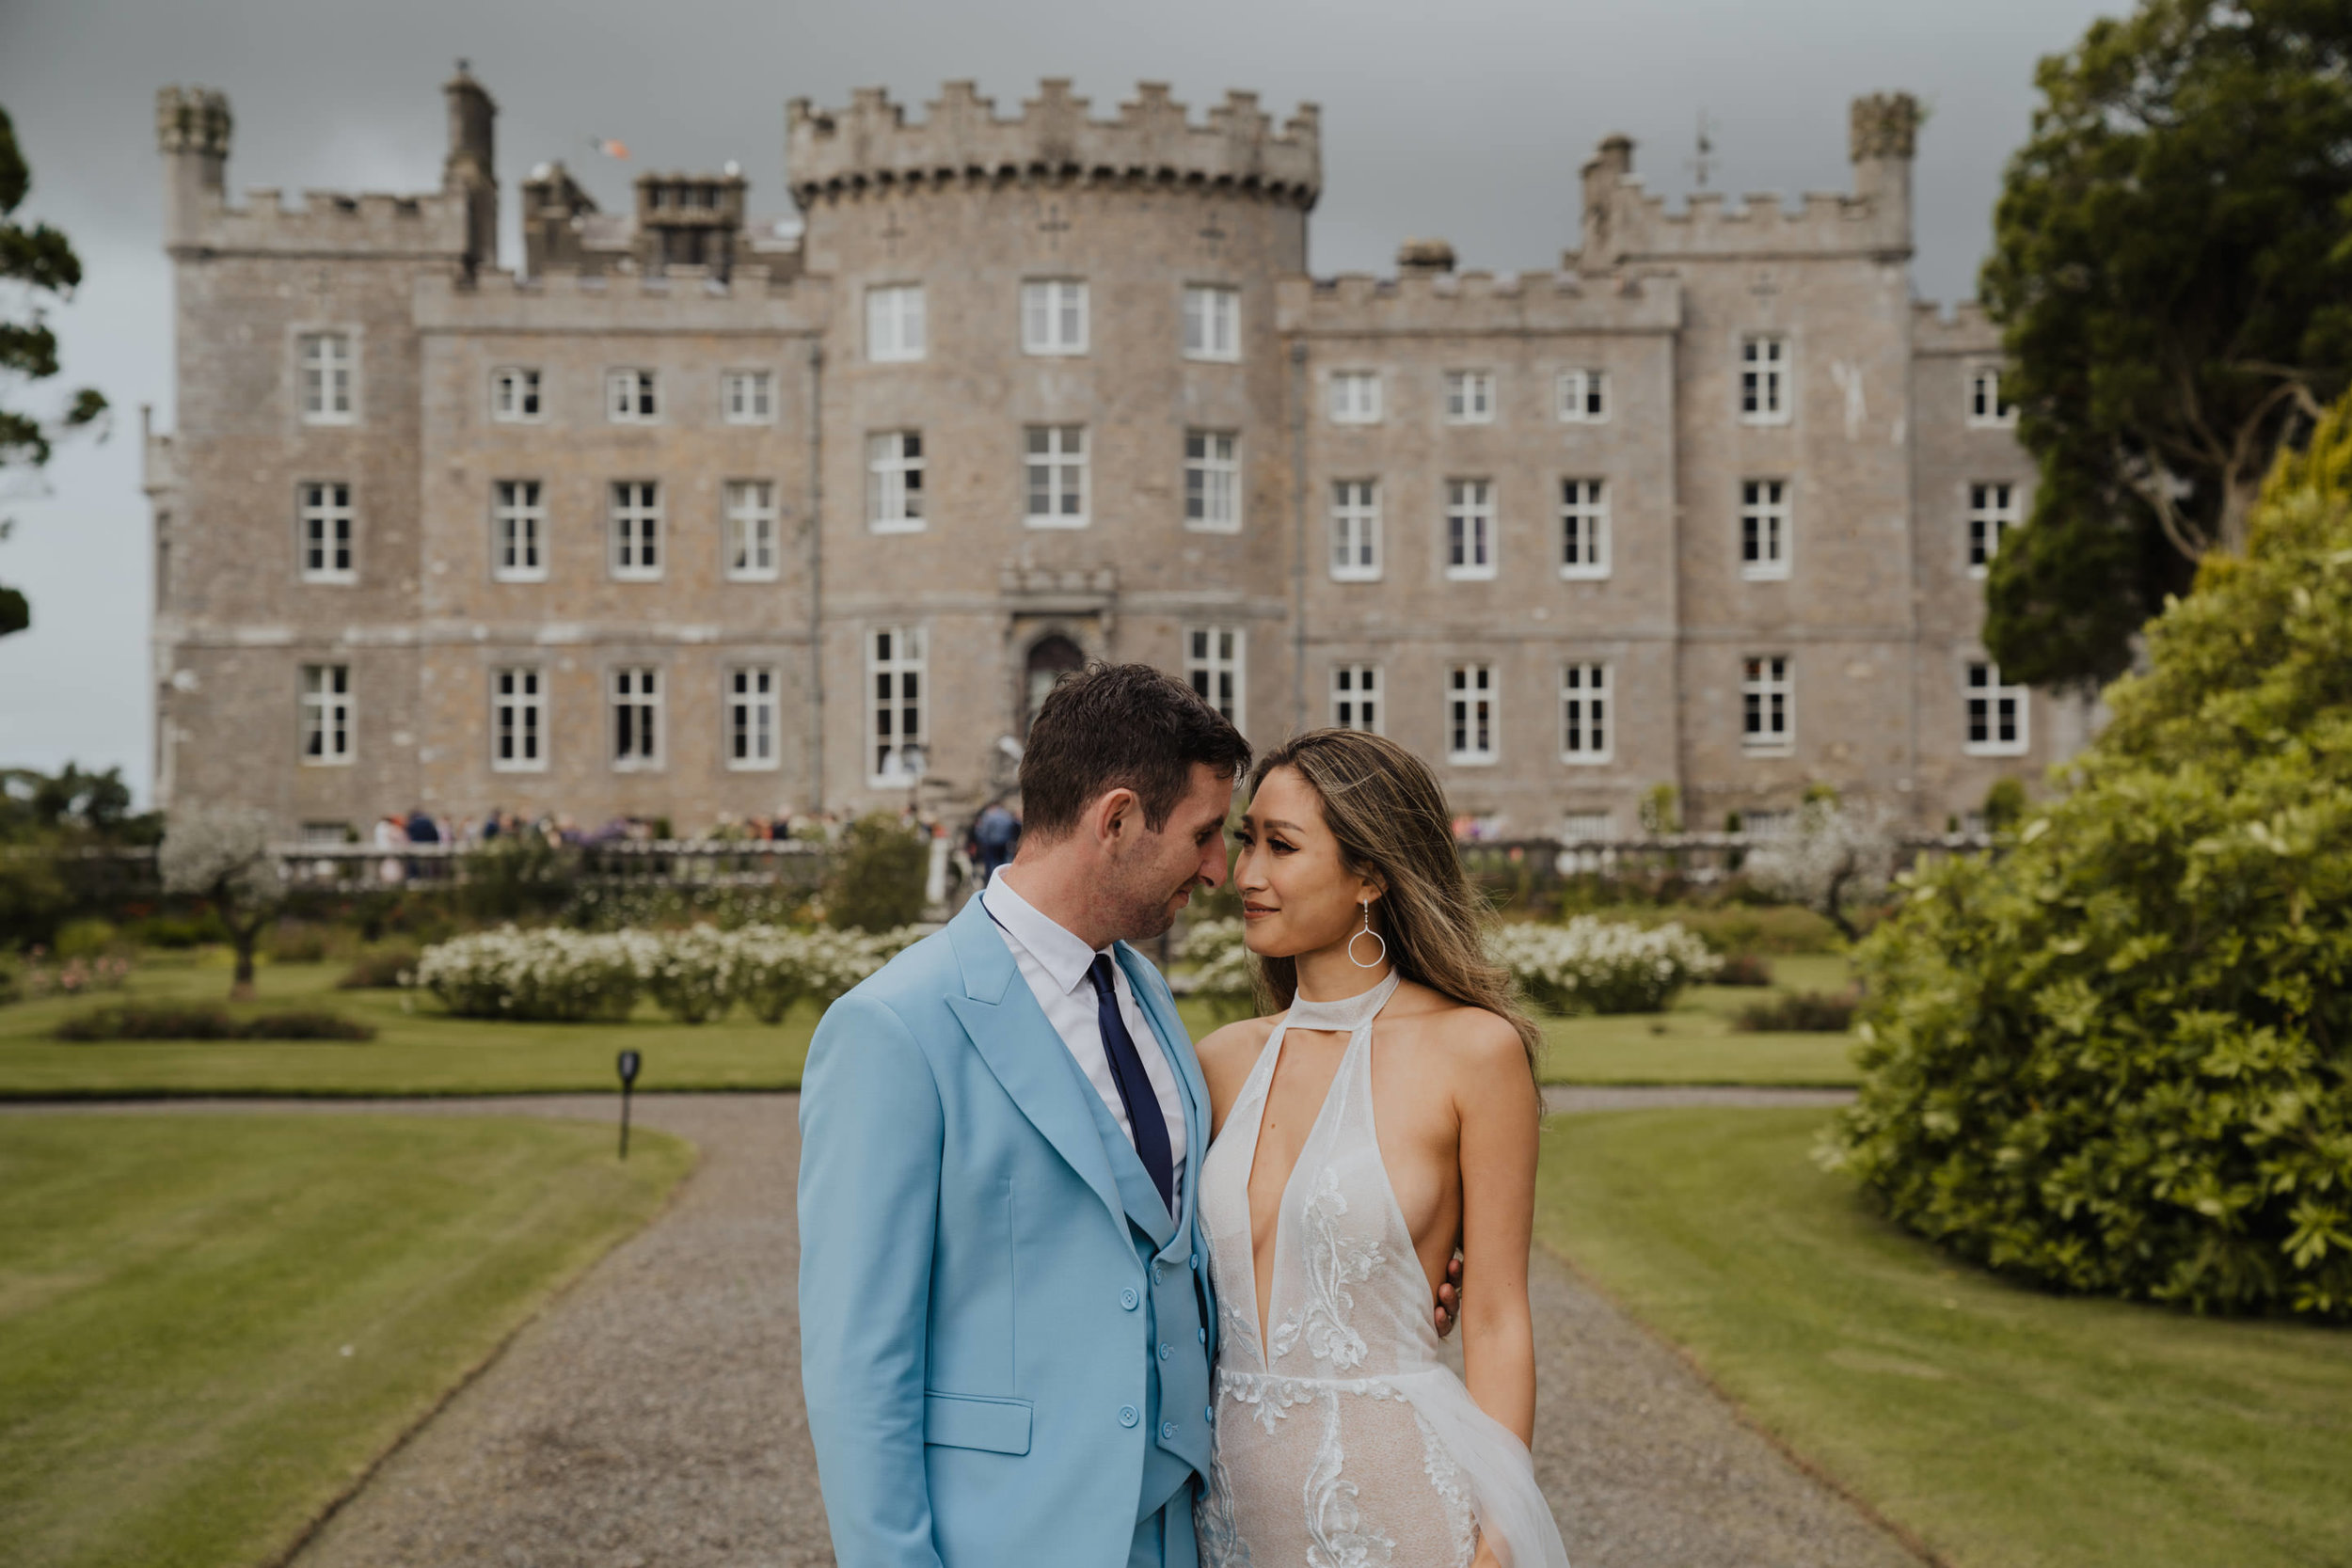 d&c_markree_castle_sligo_wedding_photographer_livia_figueiredo_3.jpg